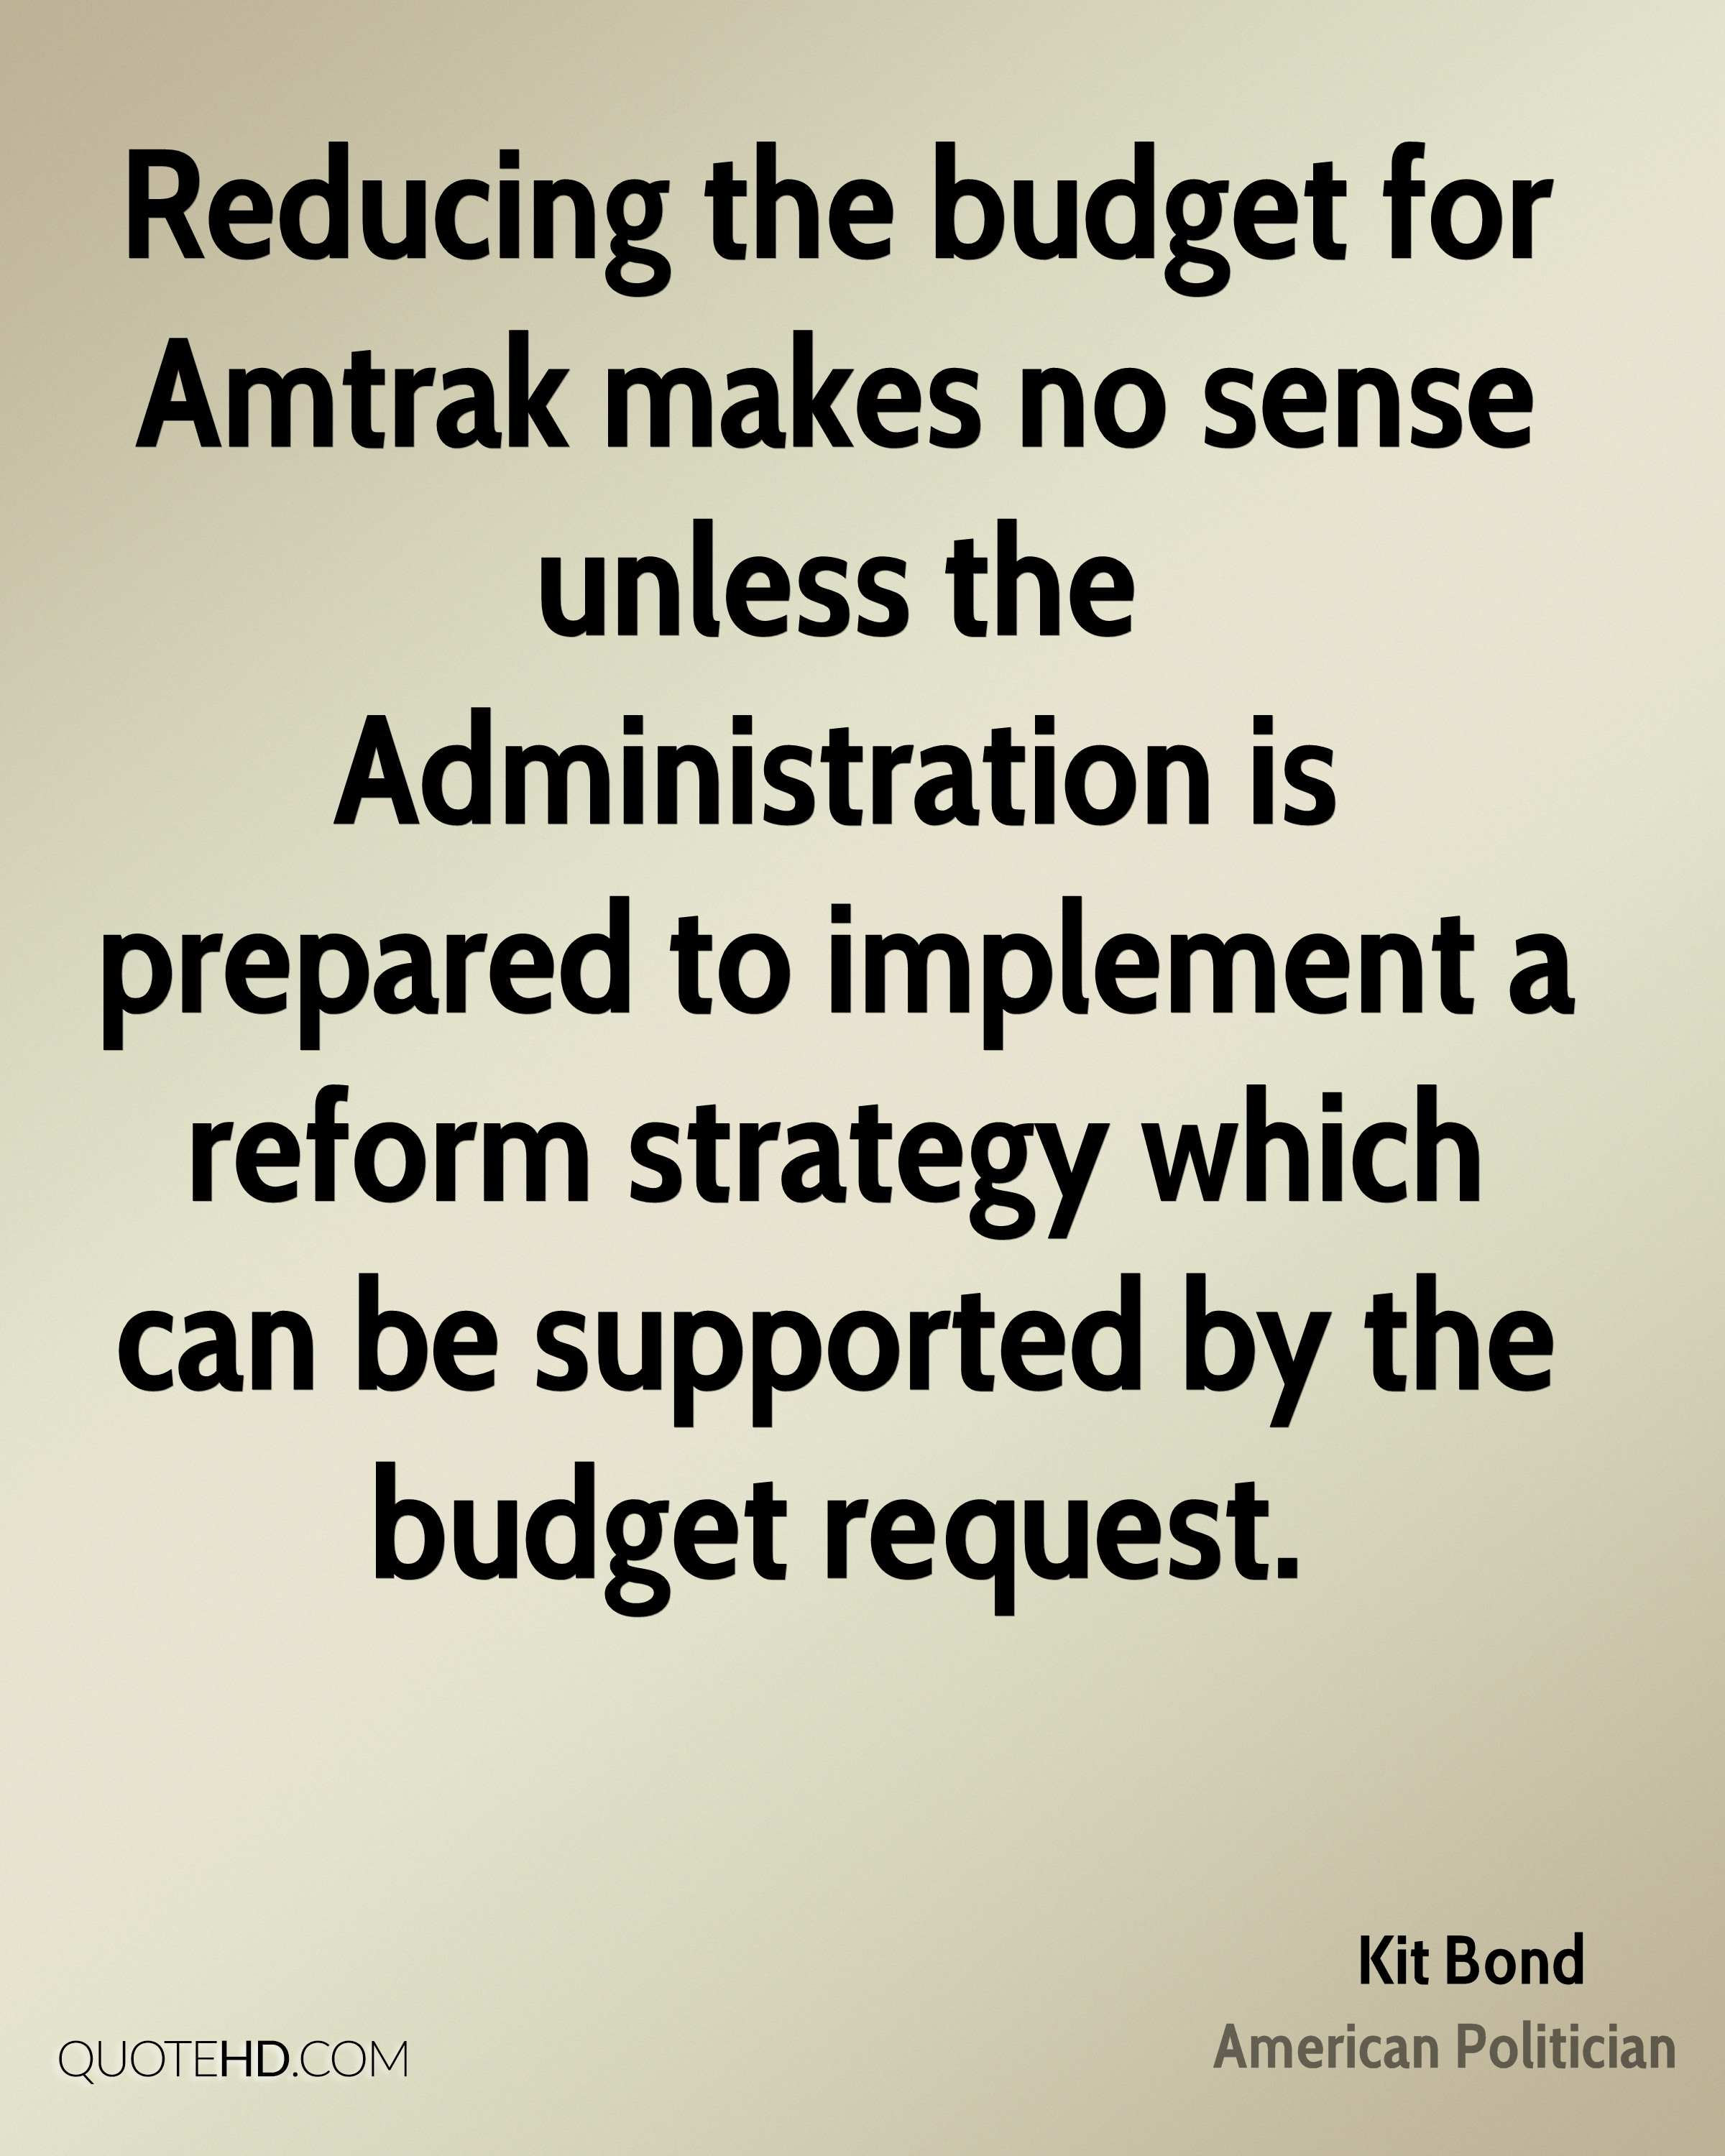 Reducing the budget for Amtrak makes no sense unless the Administration is prepared to implement a reform strategy which can be supported by the budget request.